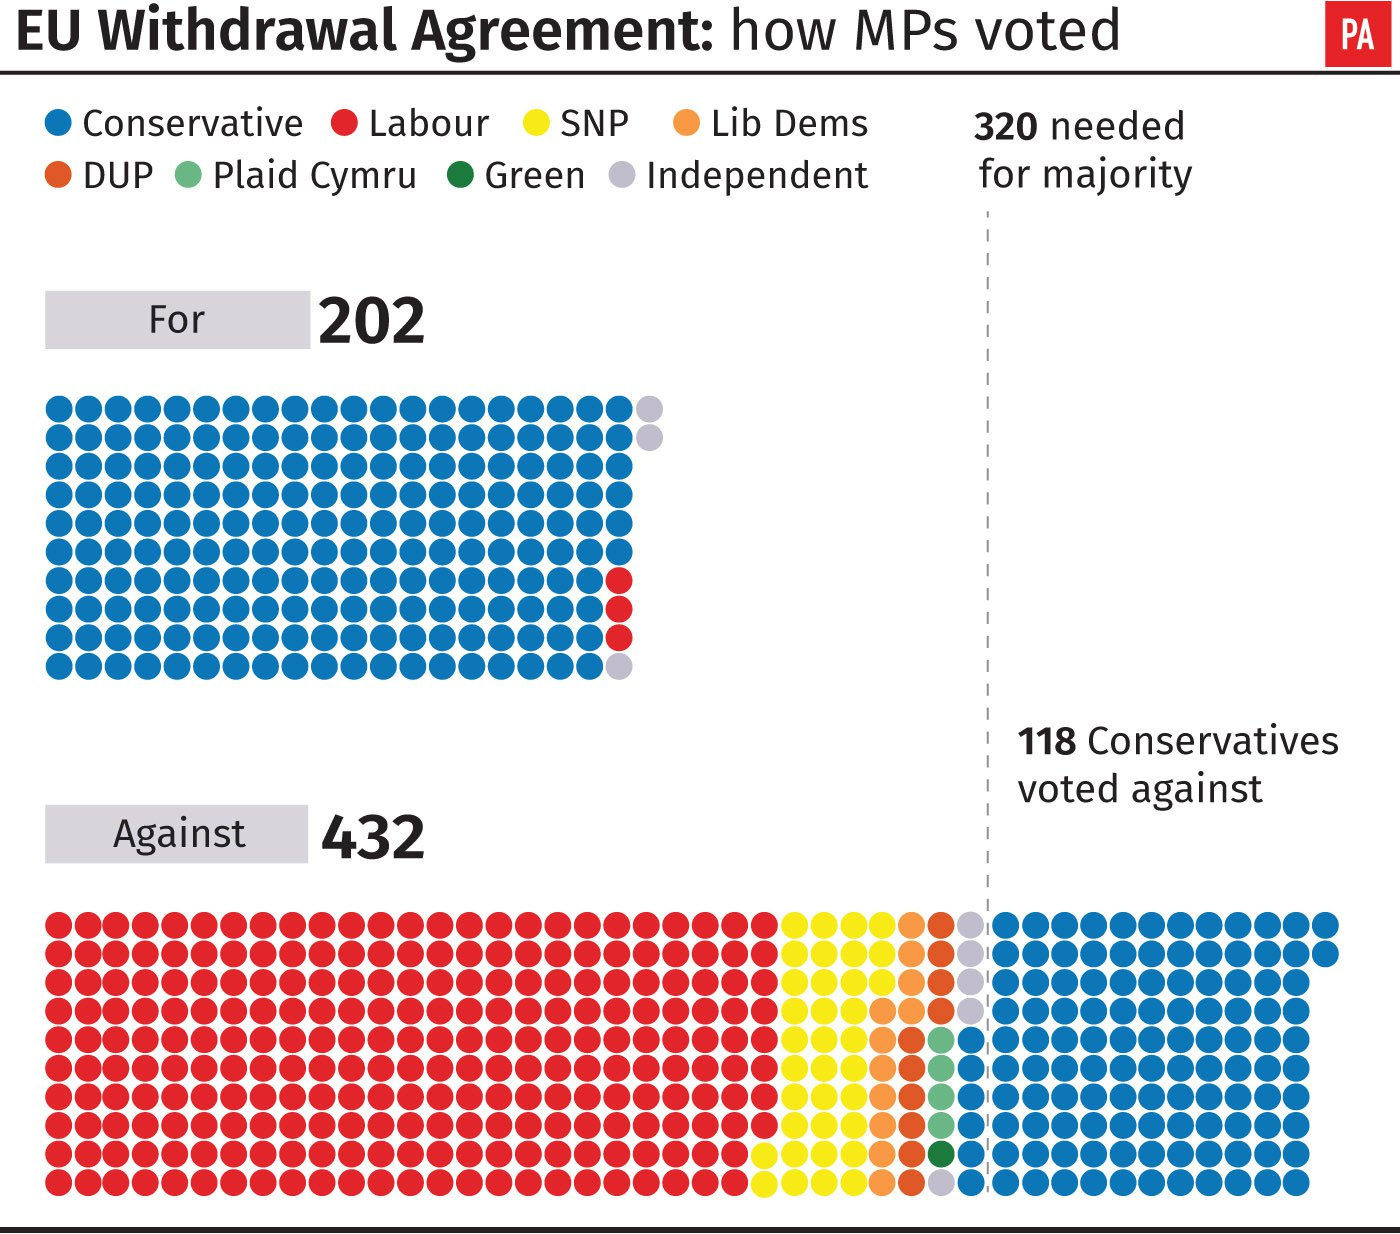 EU Withdrawal Agreement: how MPs voted. See story POLITICS Brexit. Infographic from PA Graphics